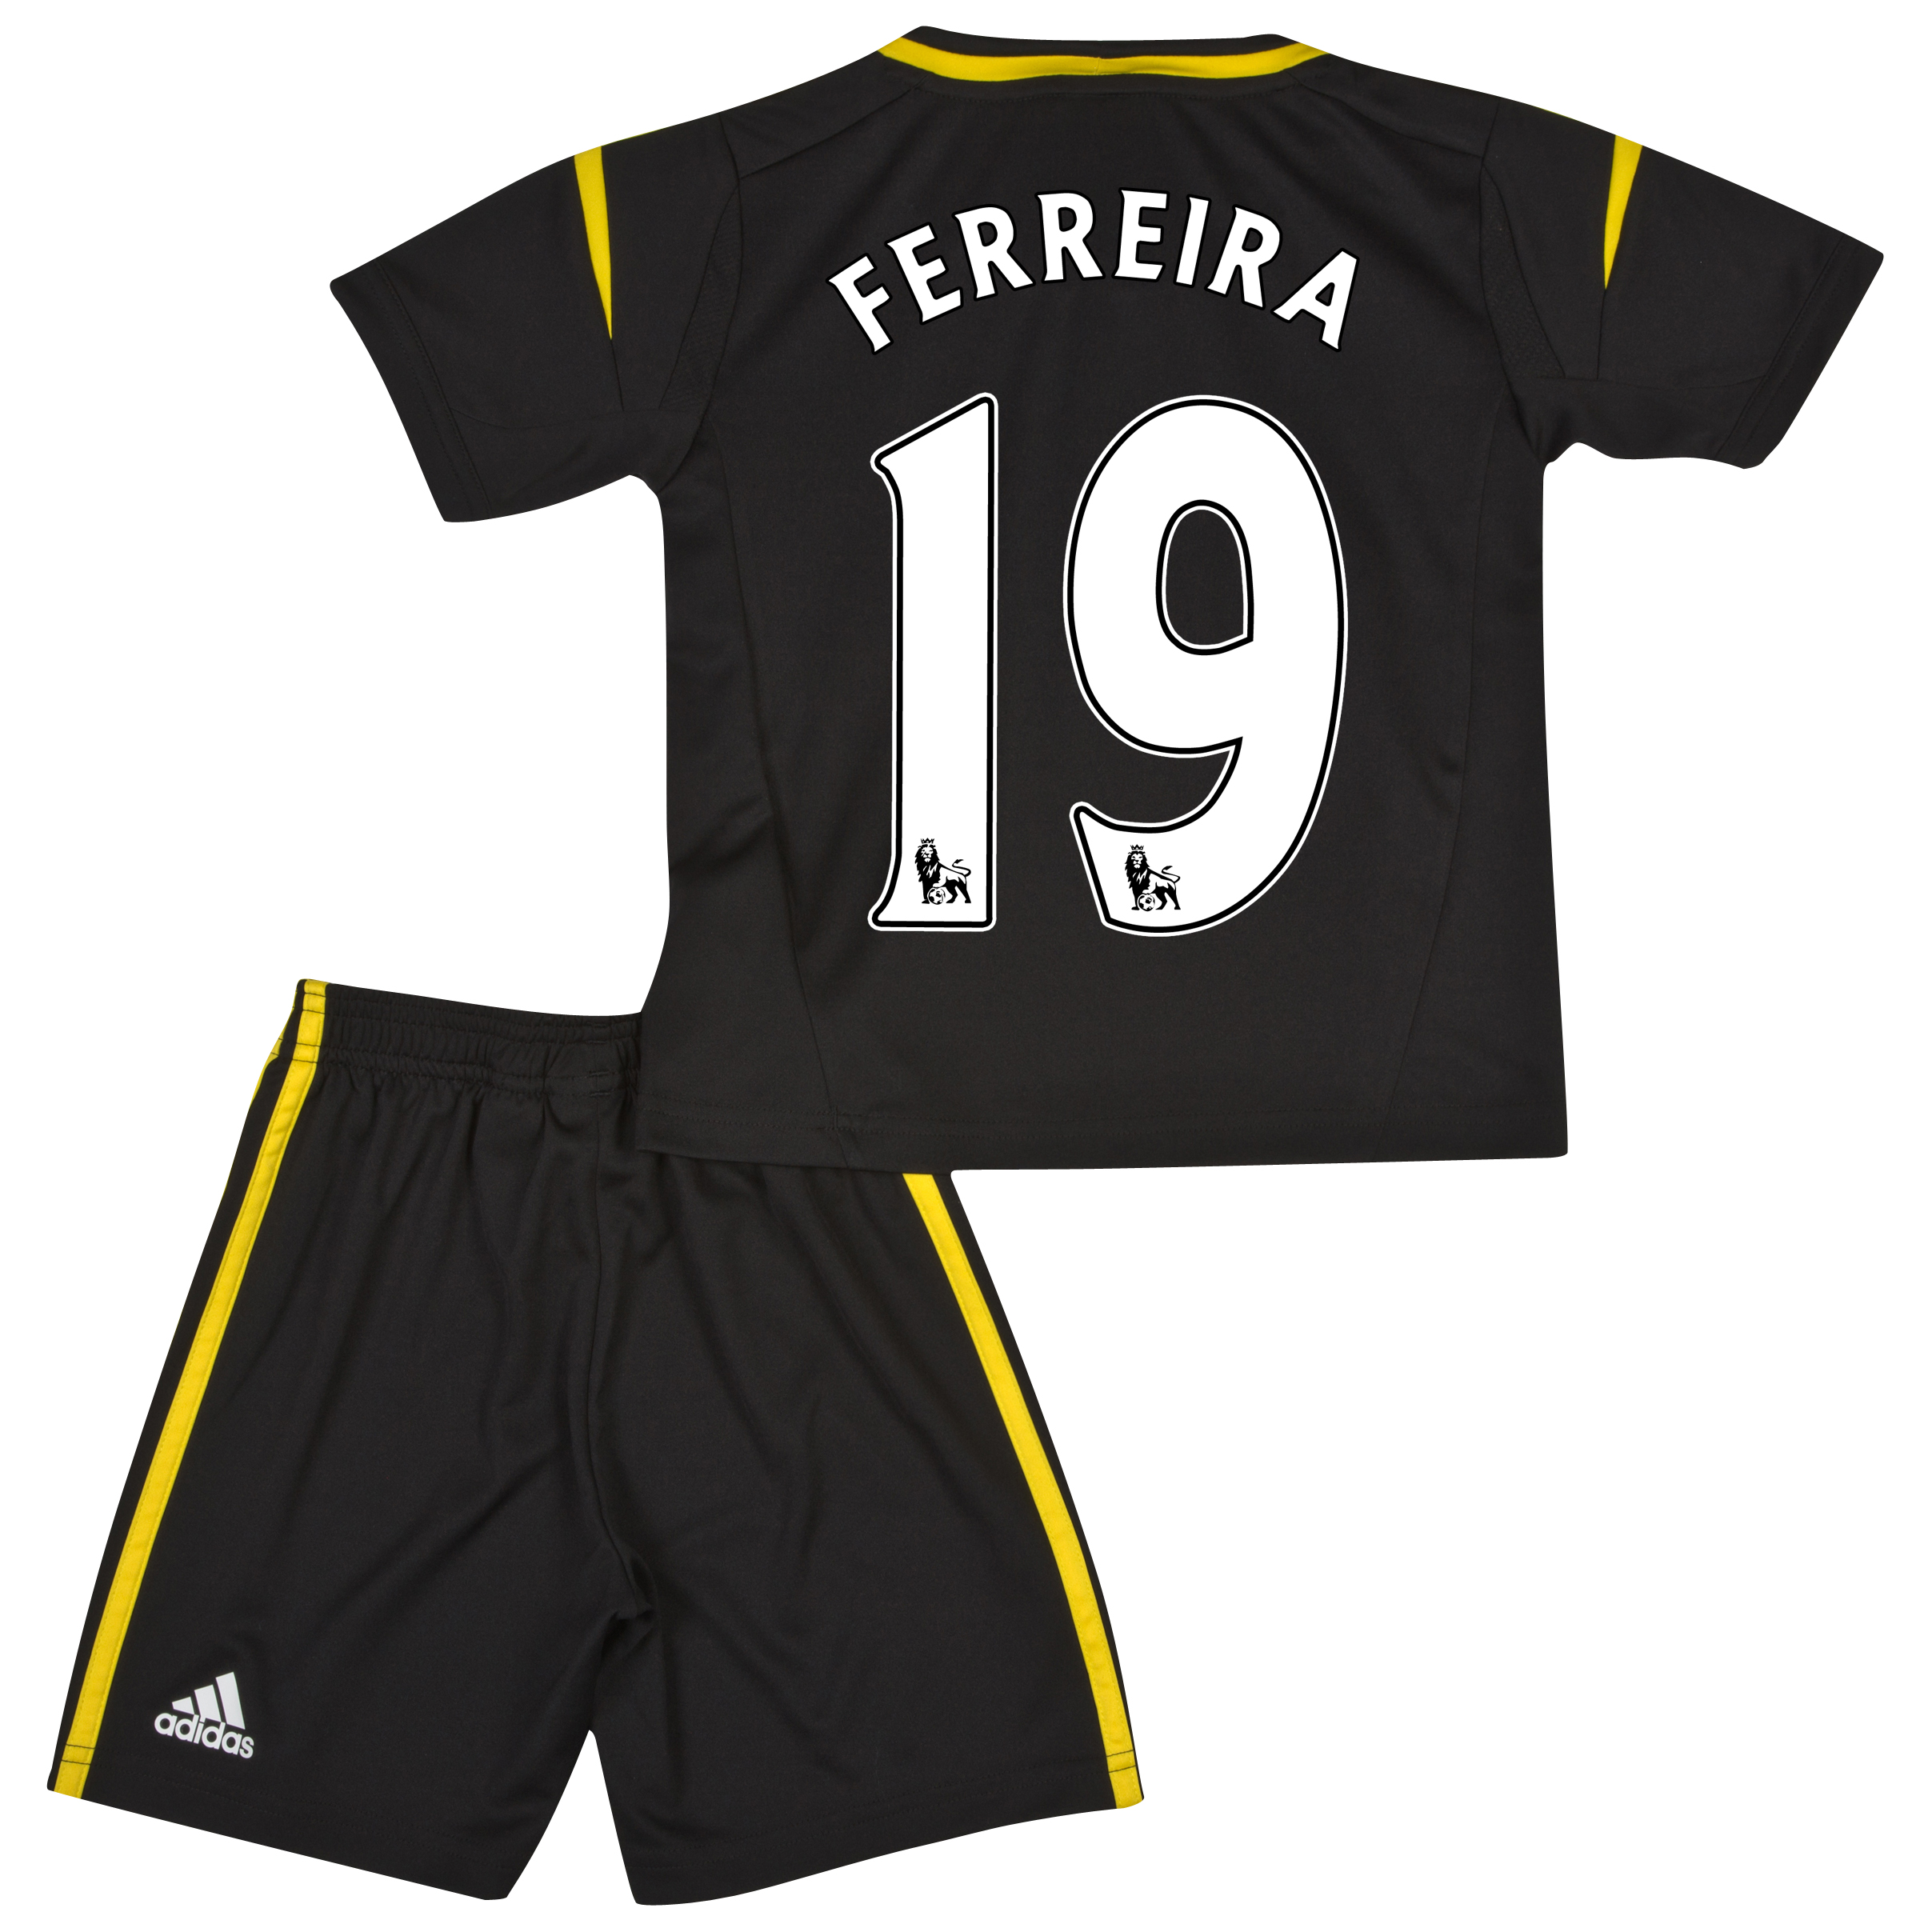 Chelsea Third Mini Kit 2012/13 with Ferreira 19 printing